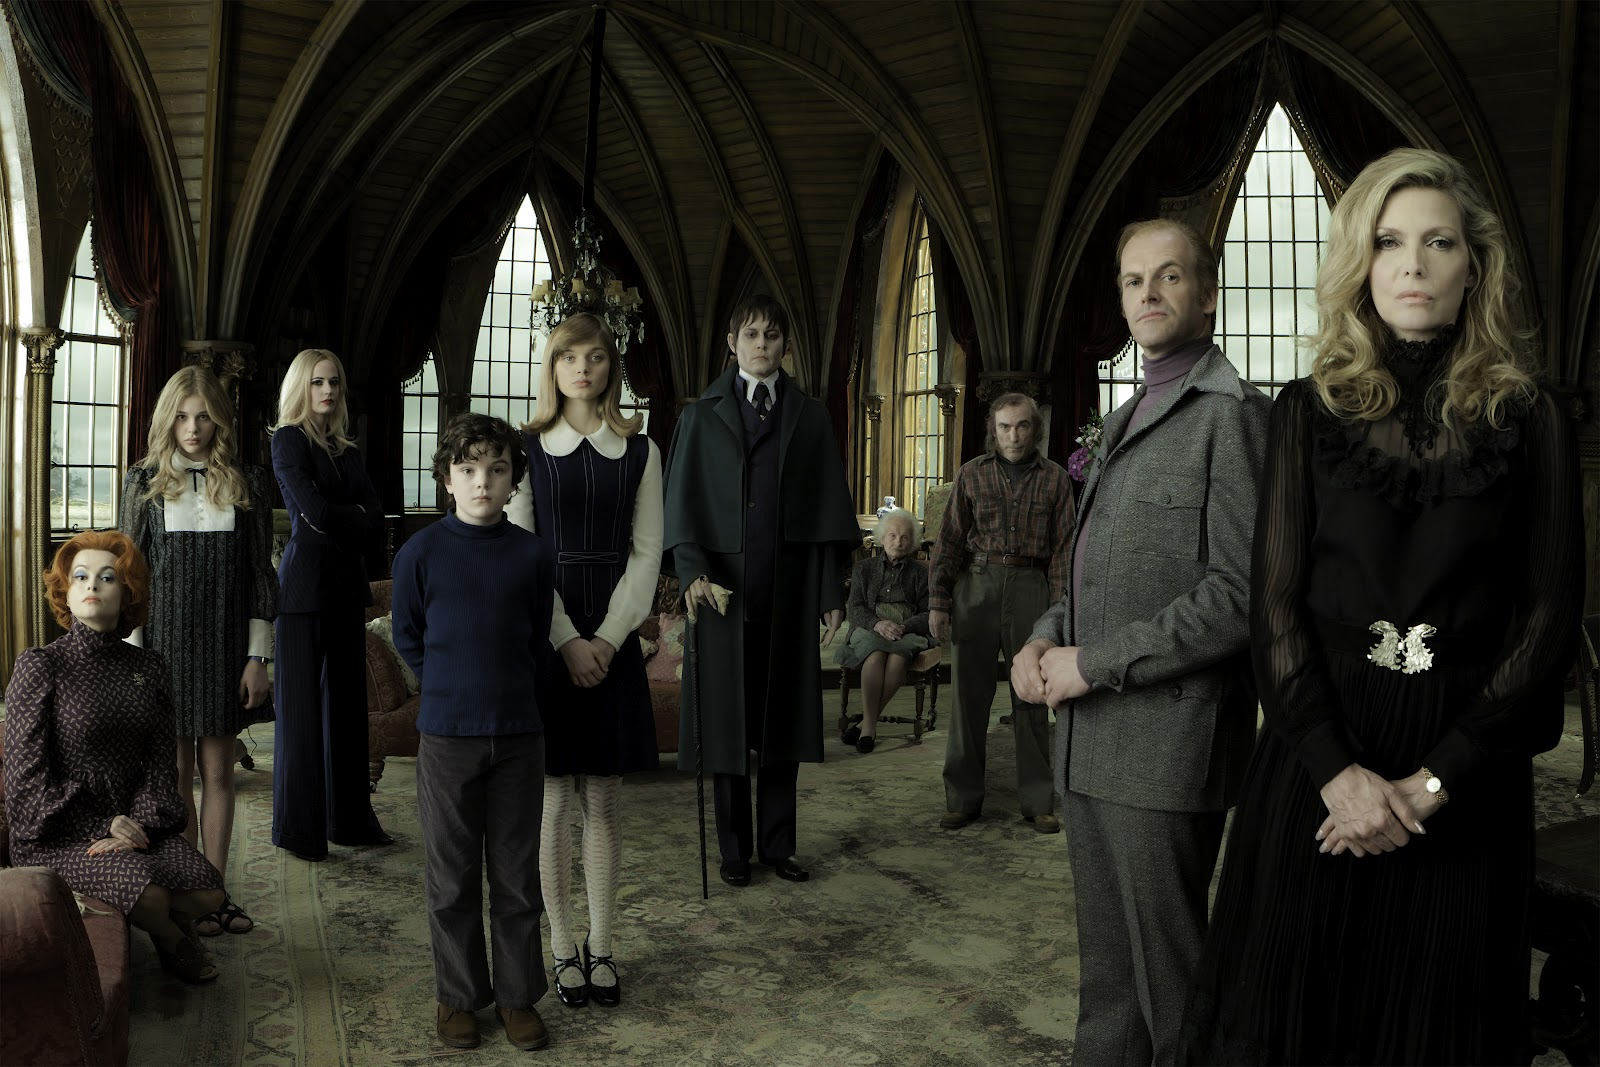 Helena Bonham Carter, Chloe Grace Moretz, Eva Green, Gulliver McGrath, Bella Heathcote, Johnny Depp, Ray Shirley, Jackie Earle Haley, Jonny Lee Miller, Michelle Pfeiffer in Dark Shadows (2012)